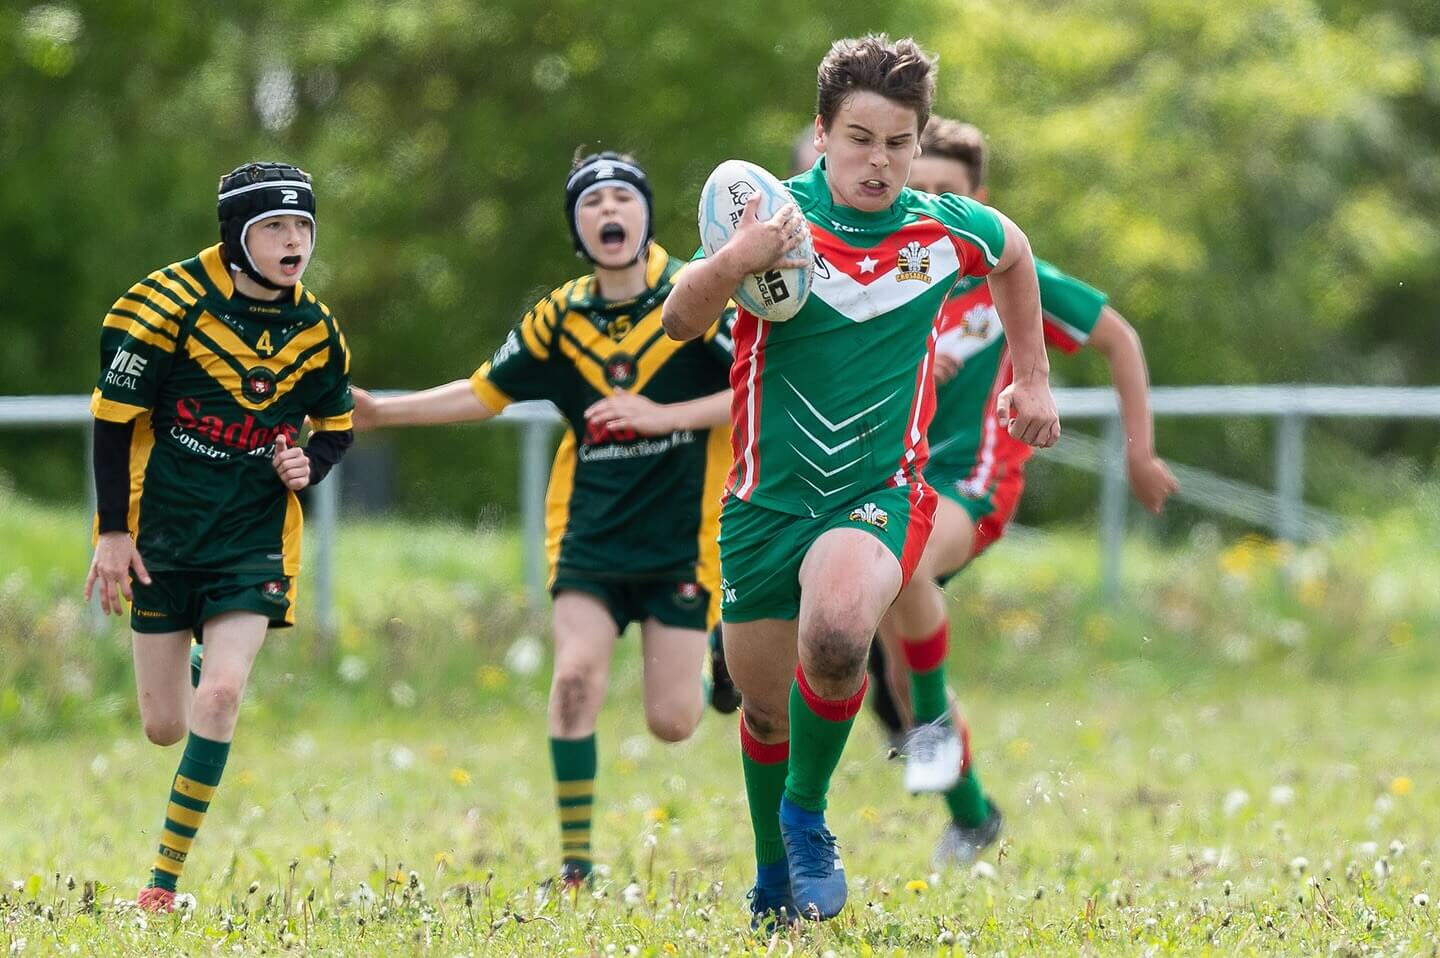 Report: North Wales Crusaders U13s 42-8 Woolston Rovers U13s